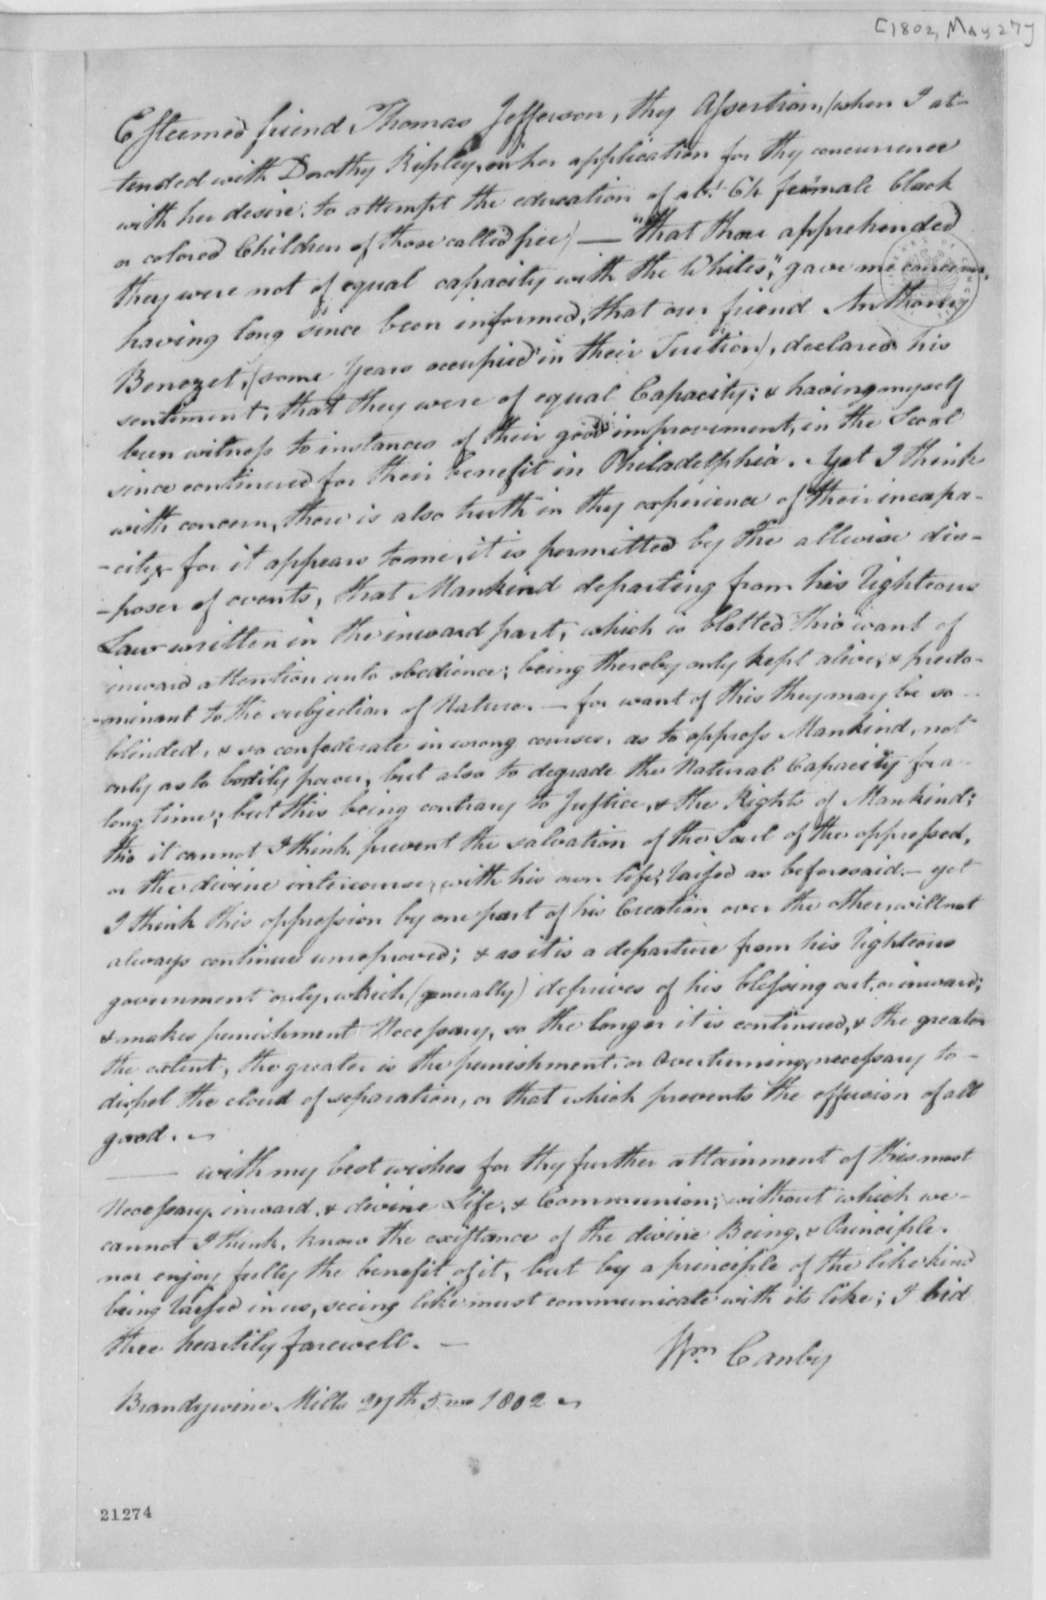 William Canby to Thomas Jefferson, May 27, 1802